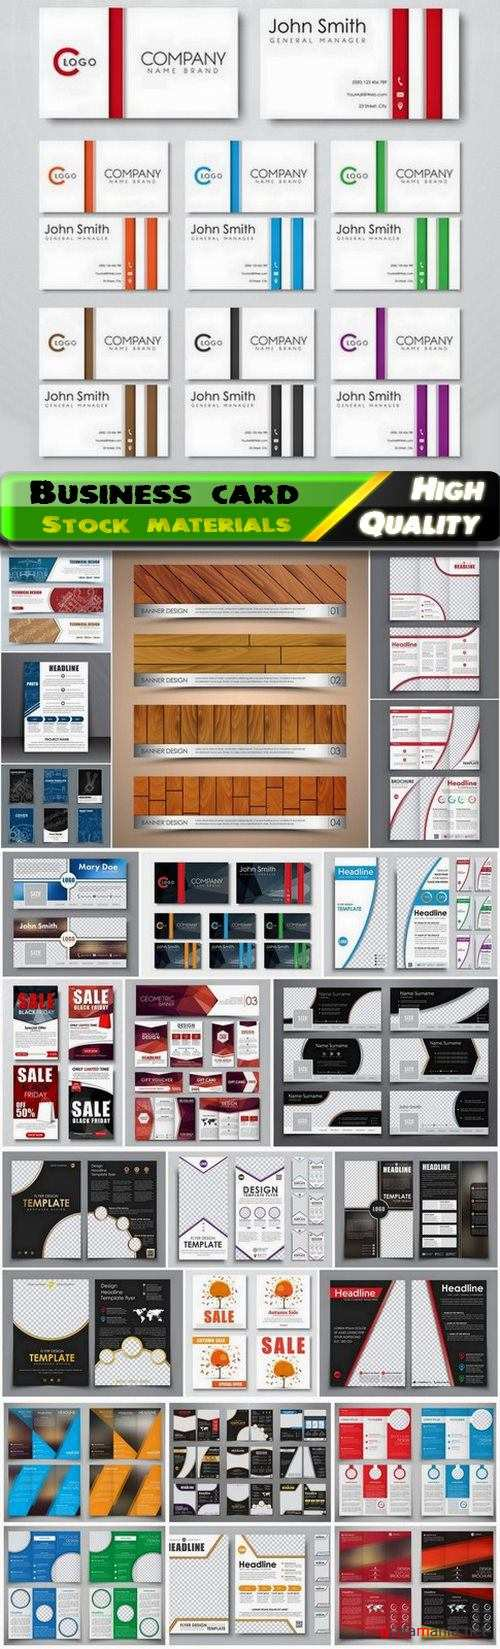 Business card flyer poster magazine corporate layout 25 Eps